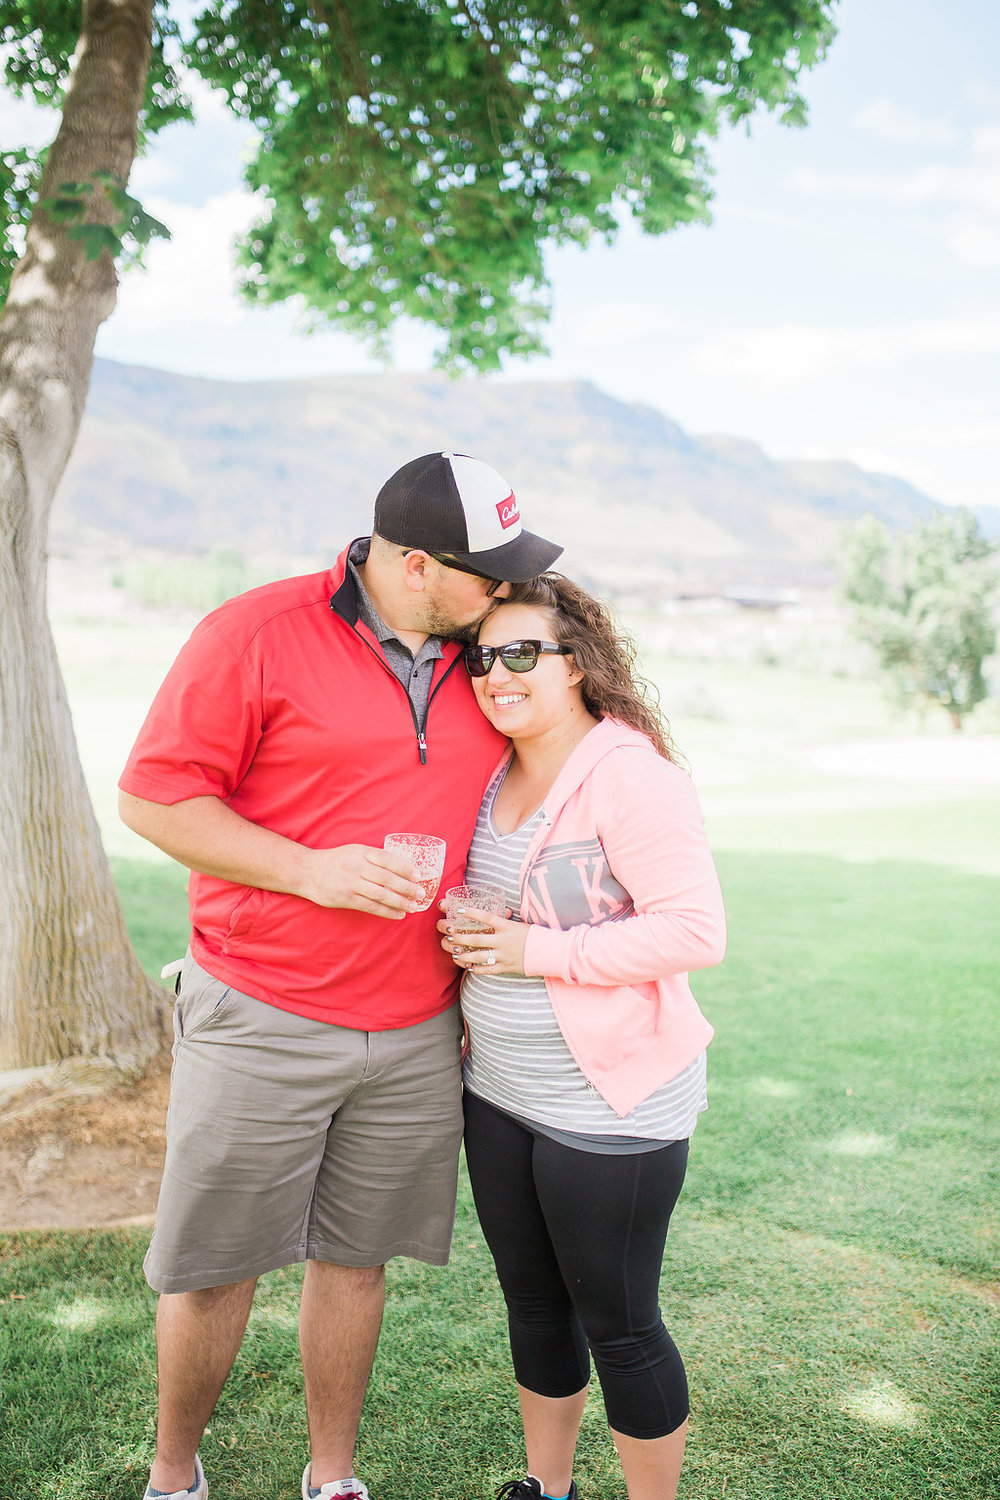 Golf Course Proposal | 9th Hole Proposal | Golf Course Photo Session | Beautiful Engagement Session | Seattle Wedding Photographer | Surprise Proposal | Kiss on Forehead